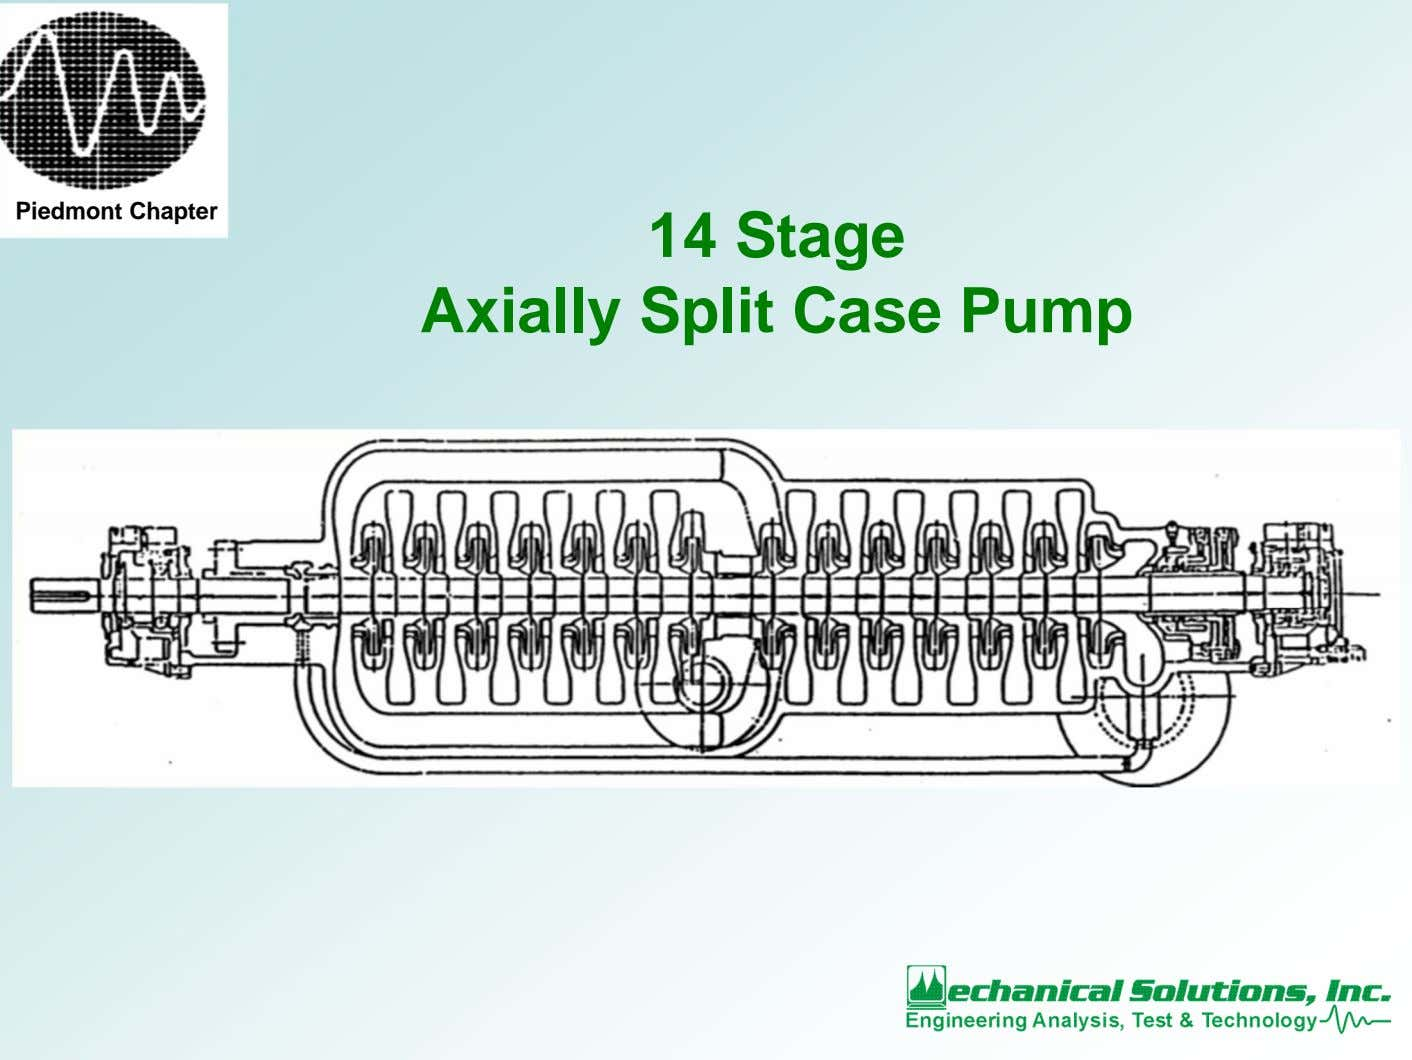 Piedmont Chapter 14 Stage Axially Split Case Pump